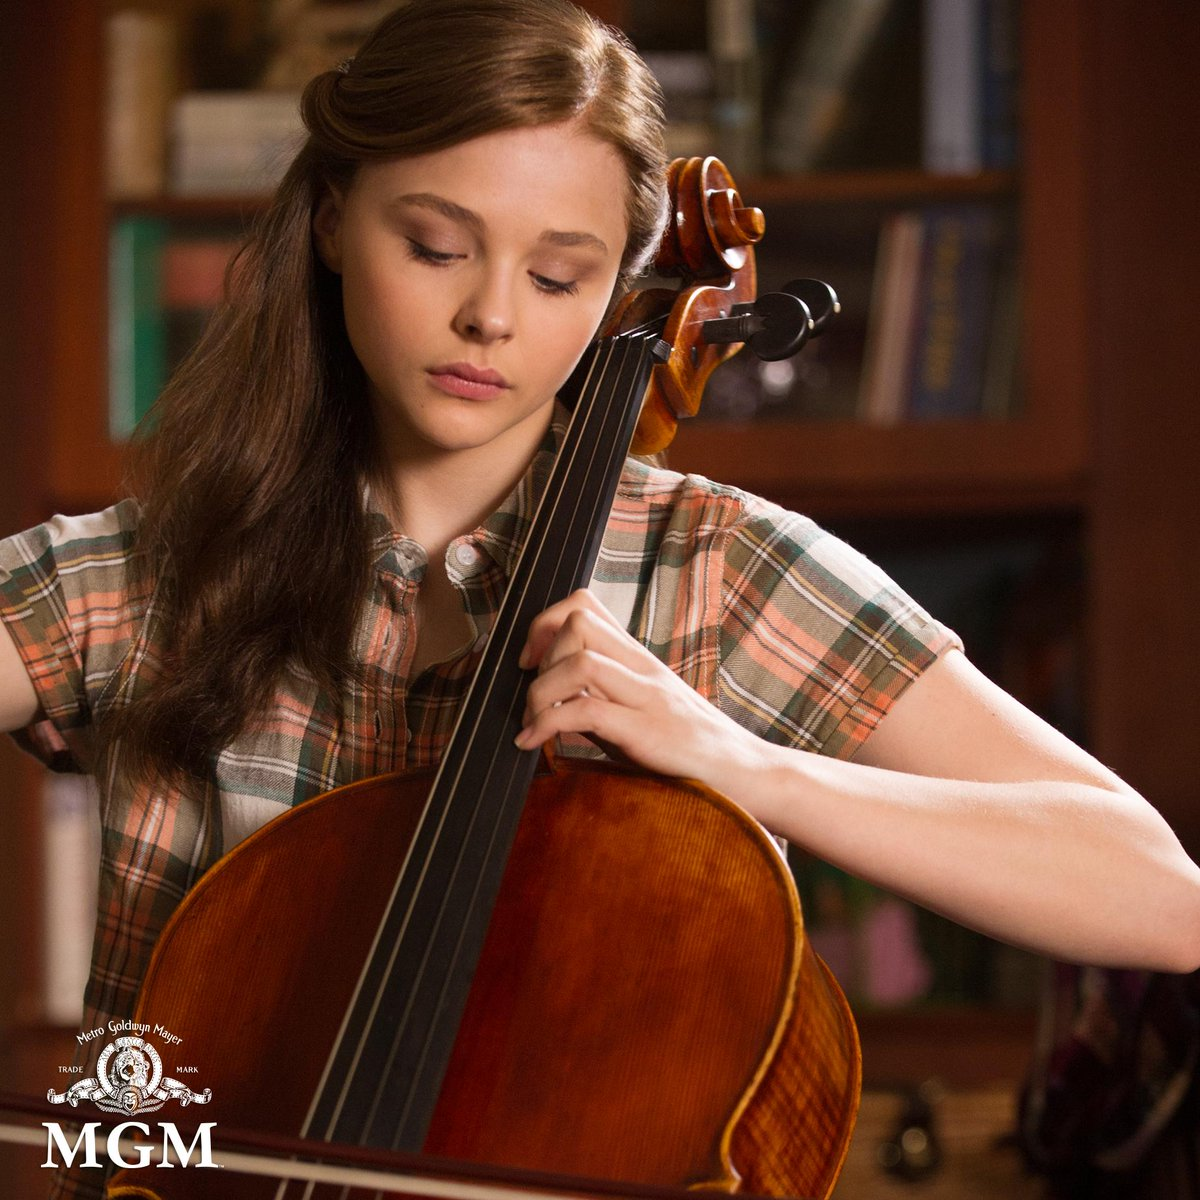 Congratulations to our very own Mia Hall @chloegmoretz on your big win! #ChoiceDramaMovieActress #TeenChoice @IfIStay http://t.co/AACilu9MVn